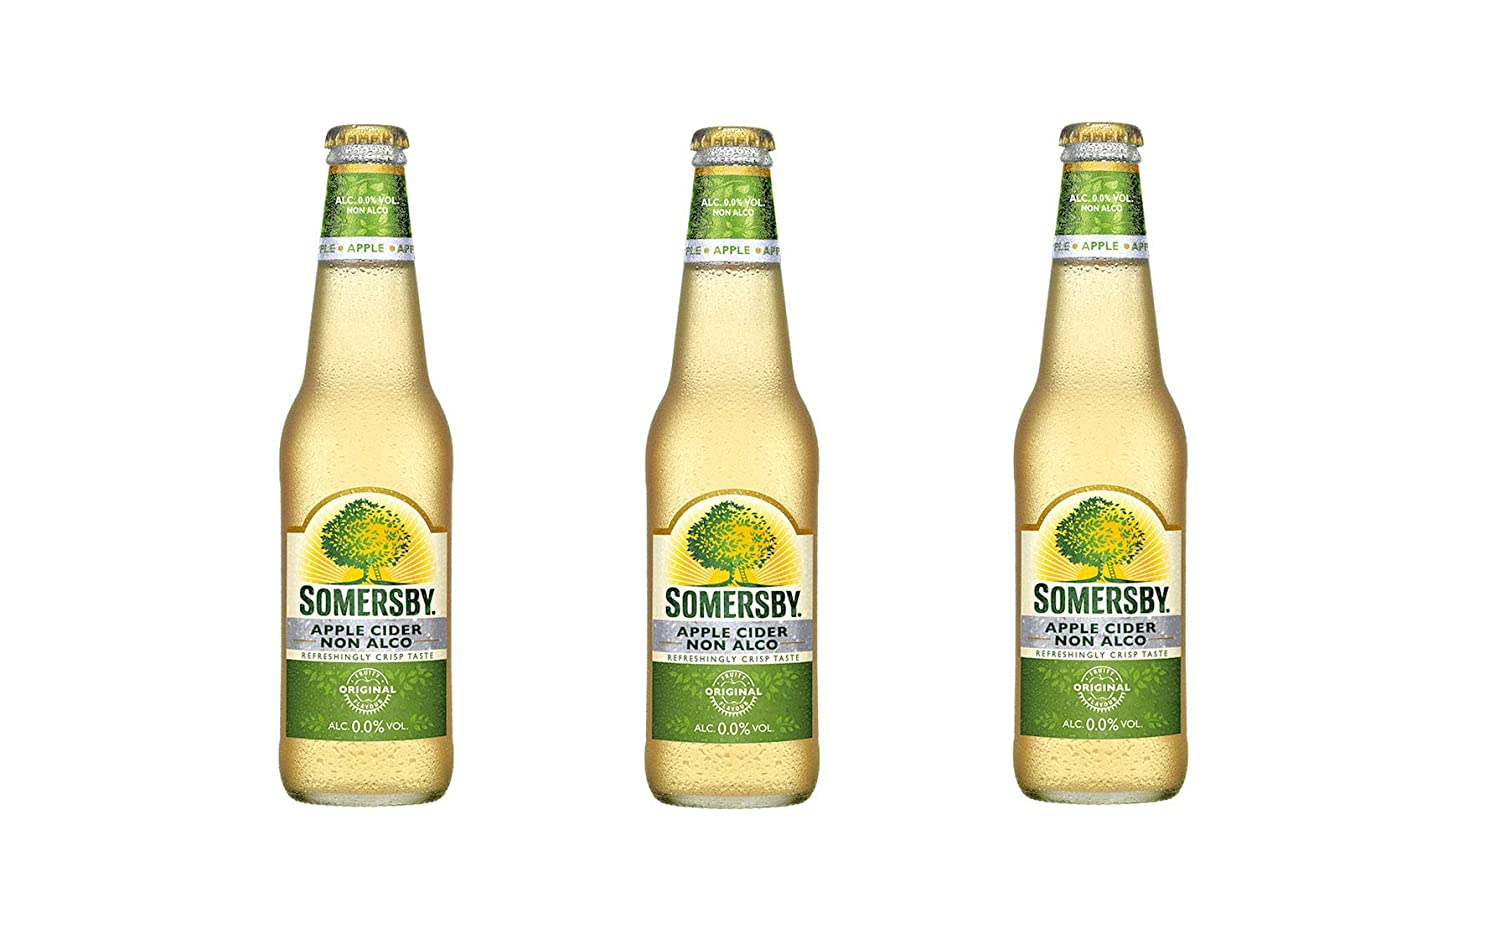 SOMERSBY Non-Alcohol, Alcohol Free Apple Cider, Carbonated Soft Drink - 330ml x 3